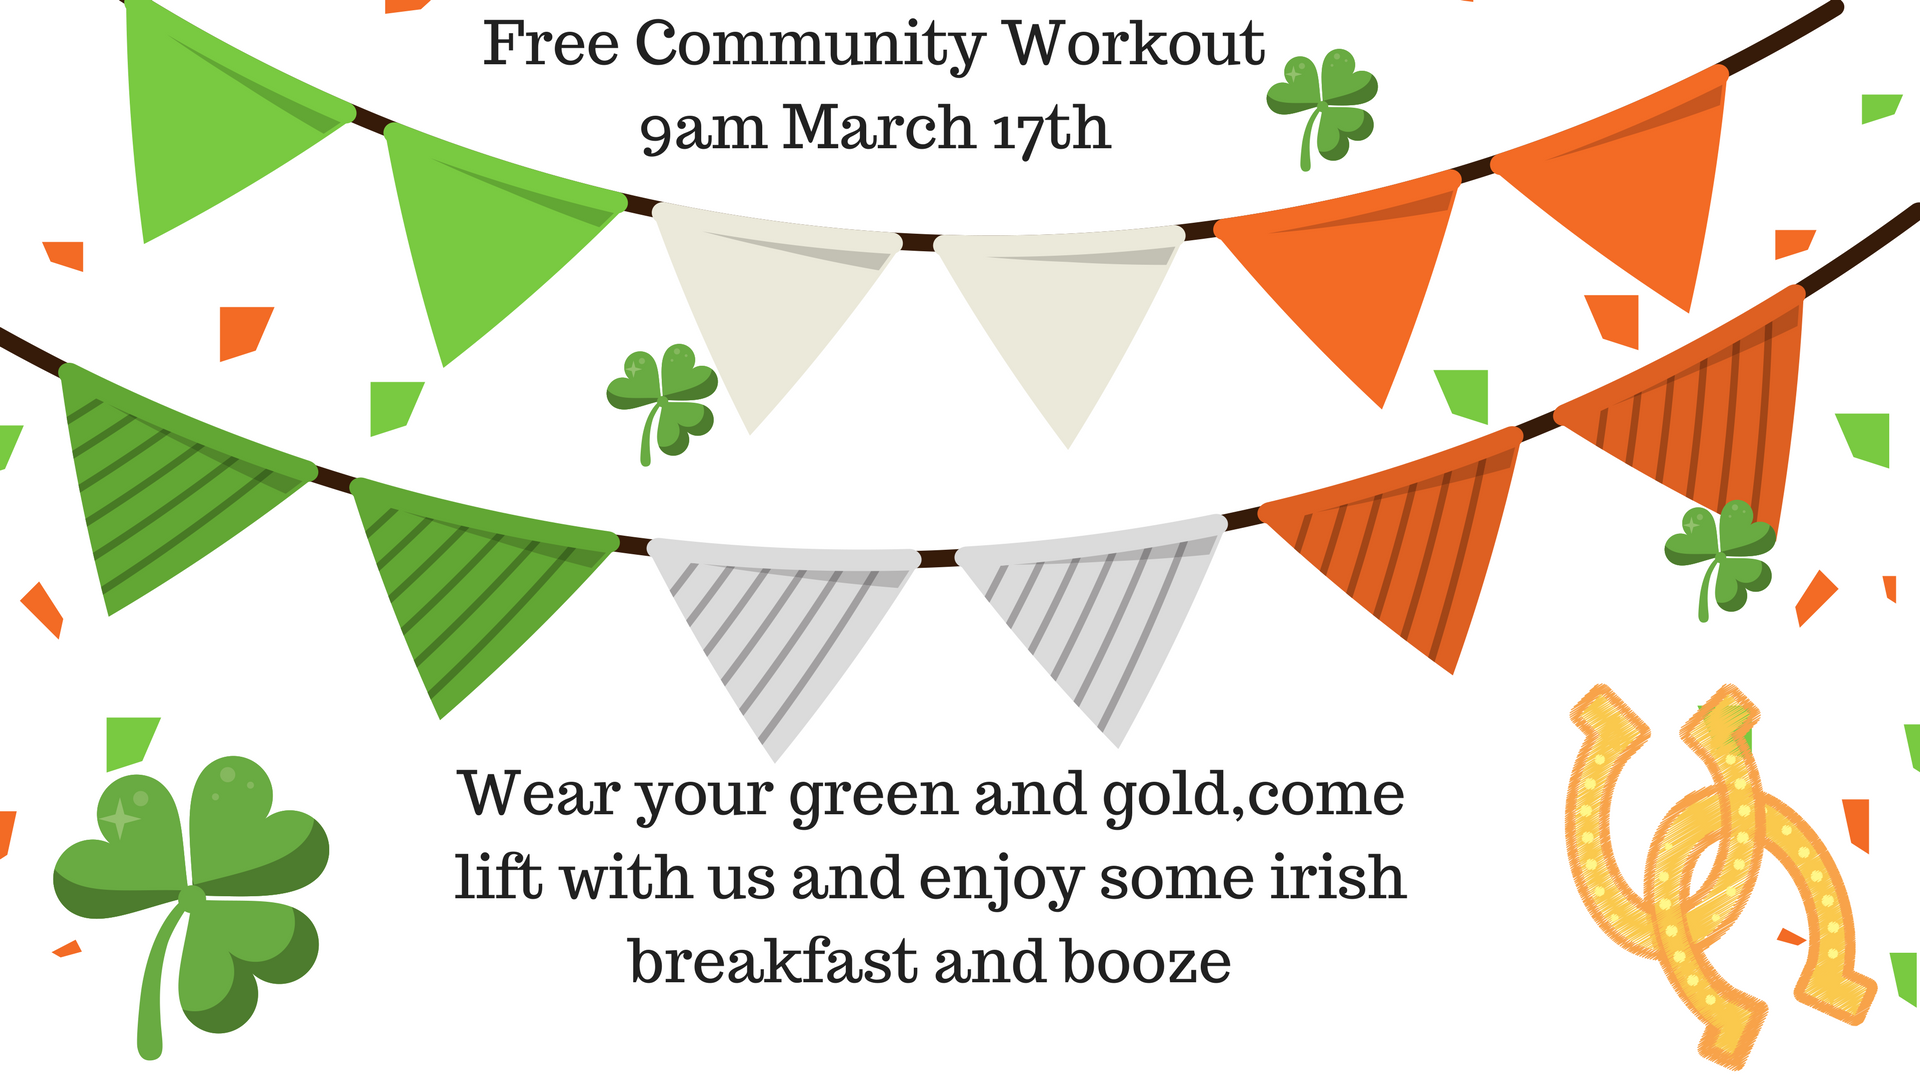 Free Community Workout9am March 17th.png